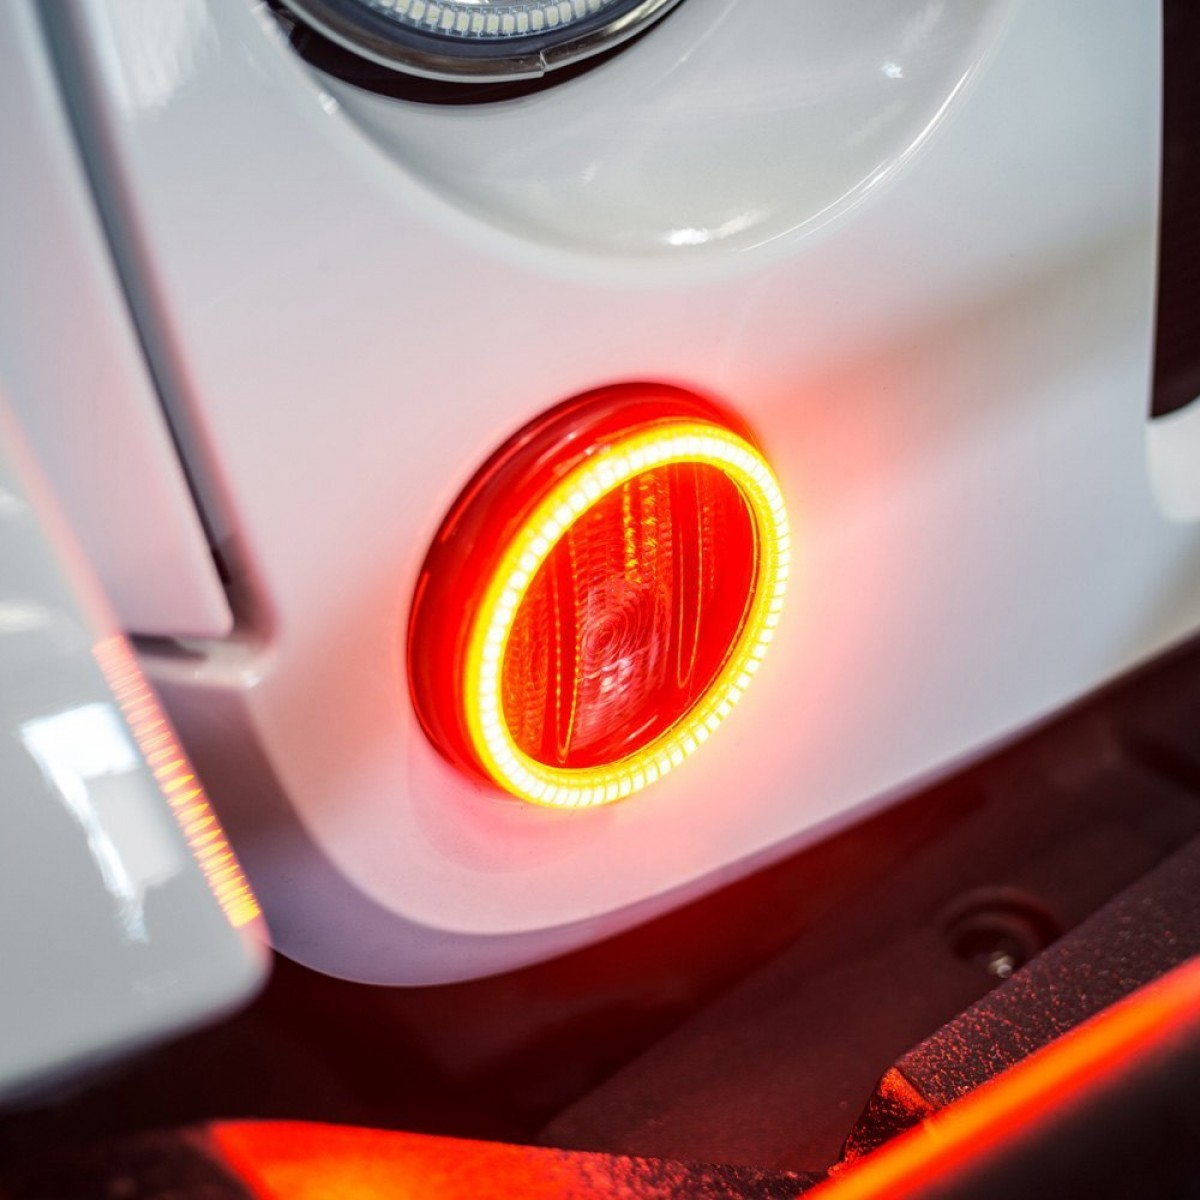 2014 Jeep Wrangler Vector: Oracle Jeep Wrangler Oracle Amber Led Waterproof Turn Signal Halo Kit